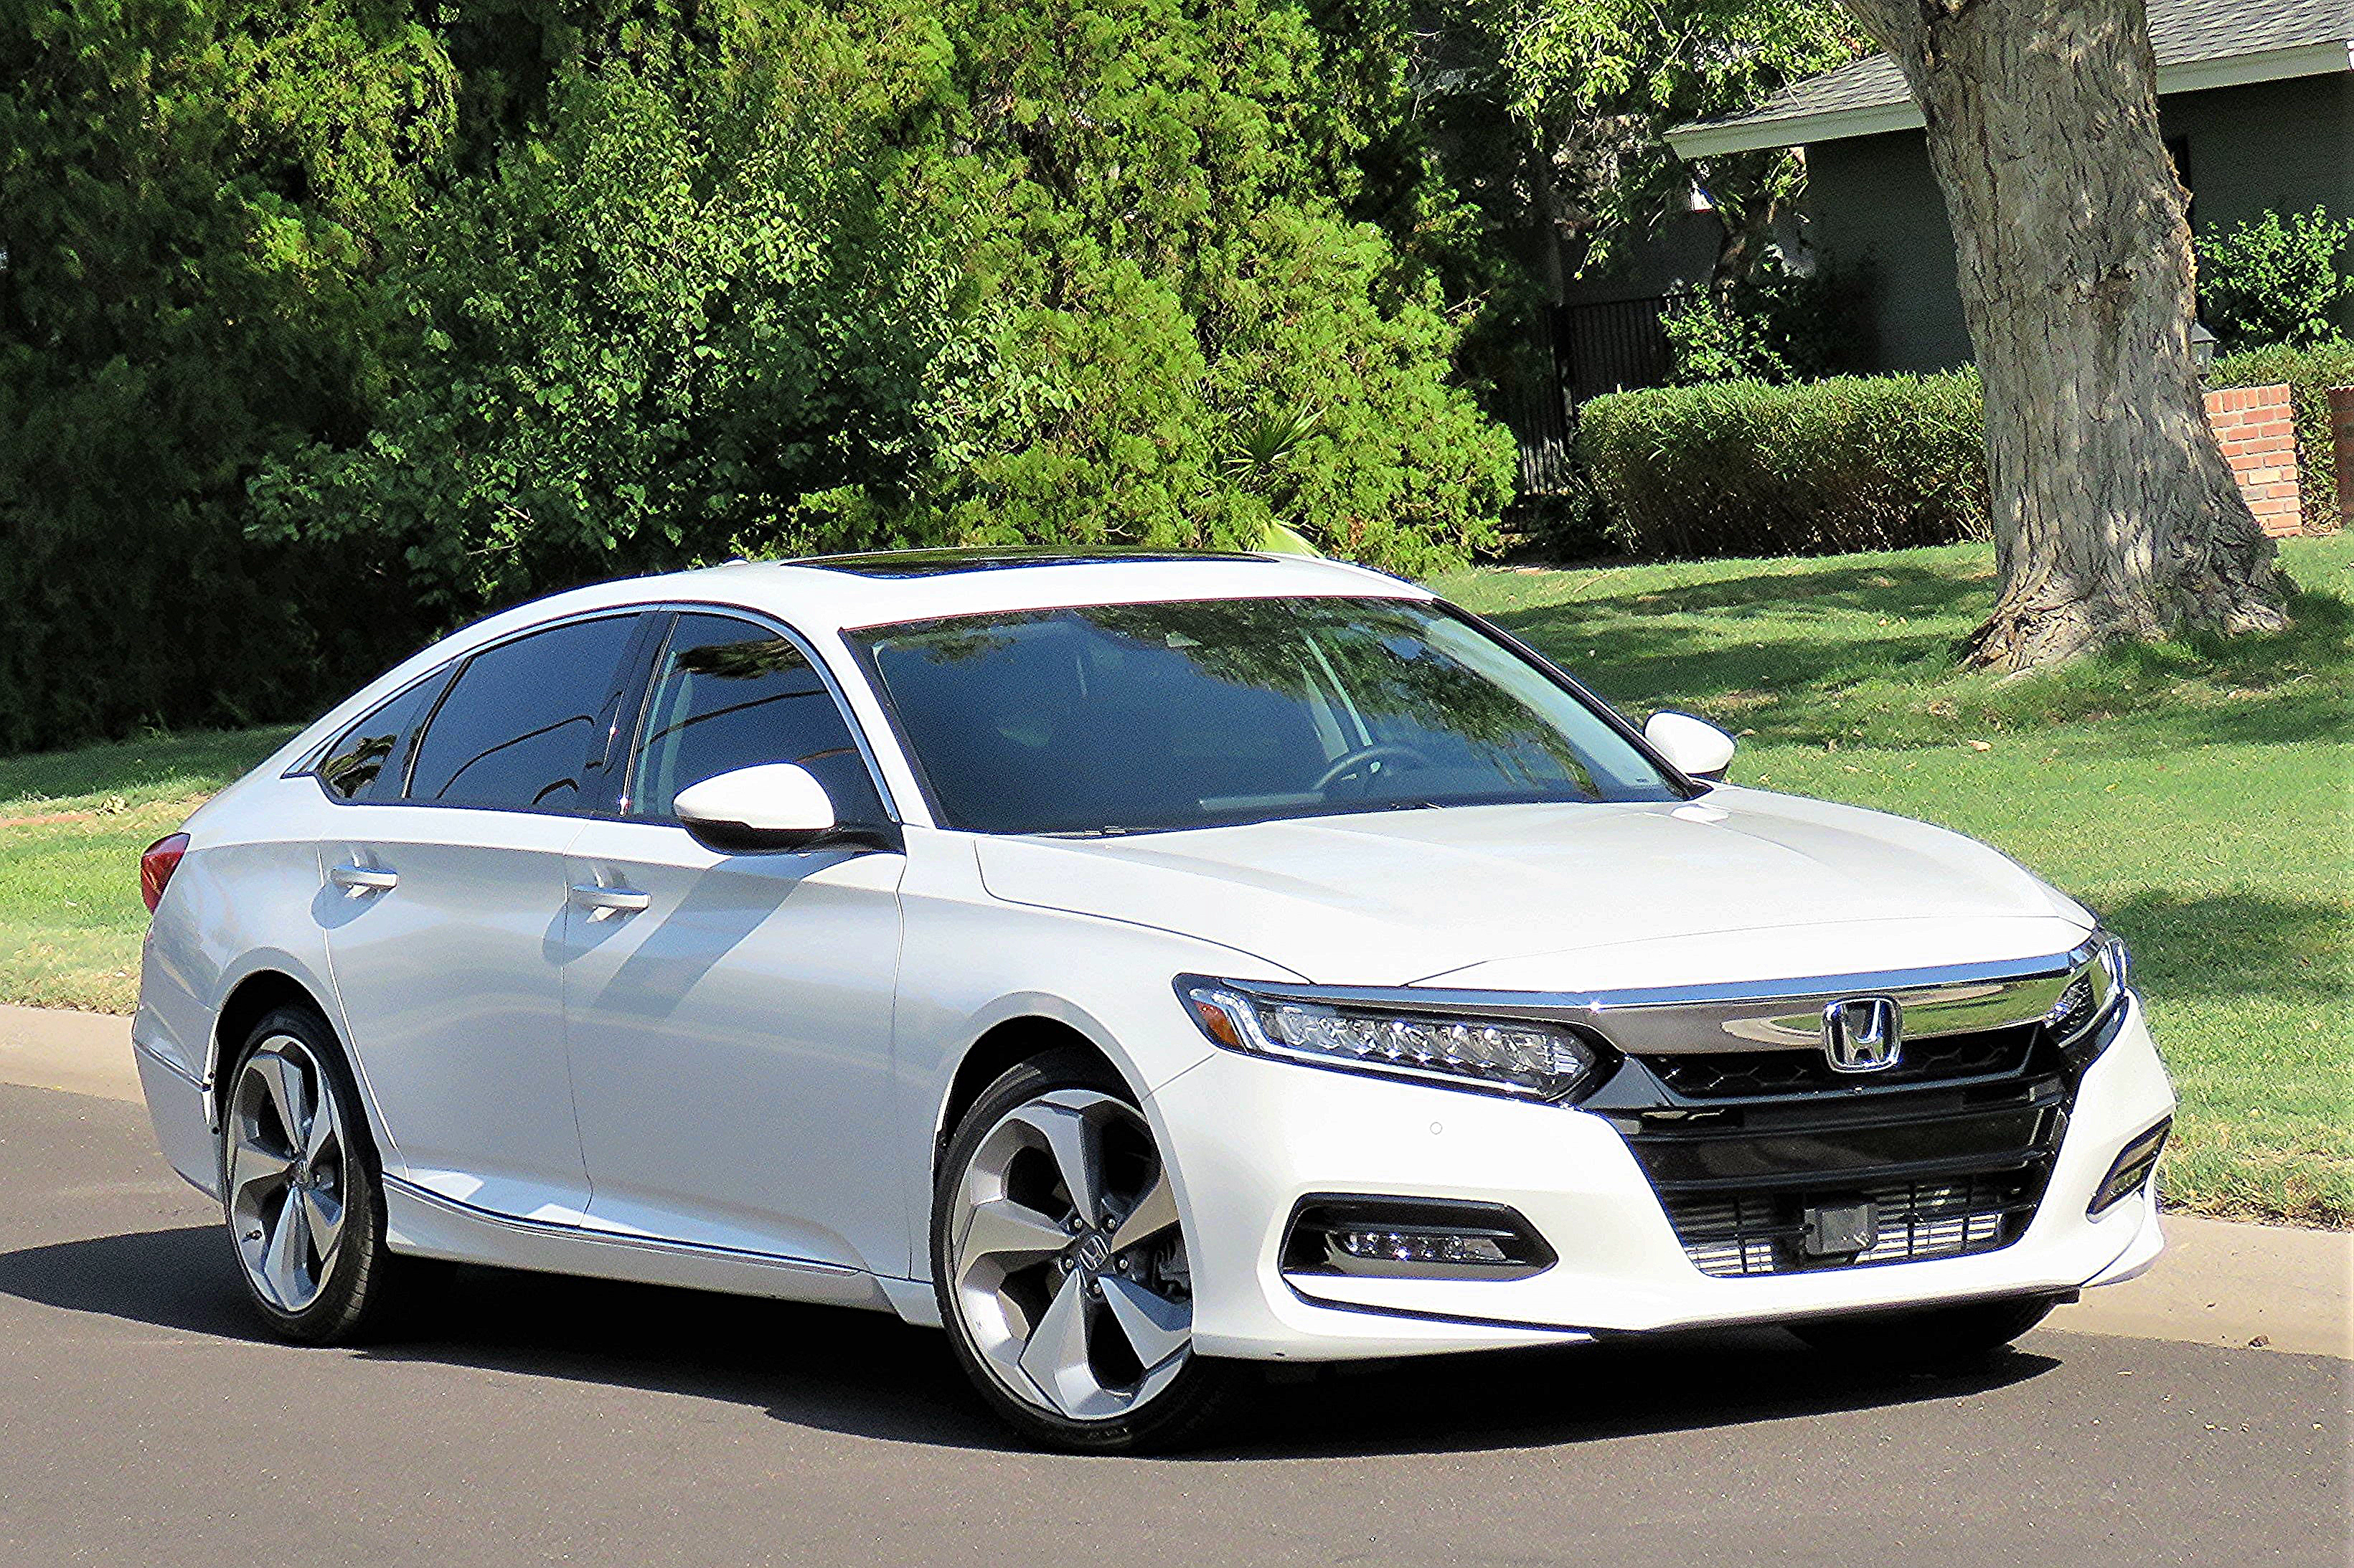 Driven 2018 honda accord touring 2 0t 4 door sedan for Honda accord 2018 price in usa